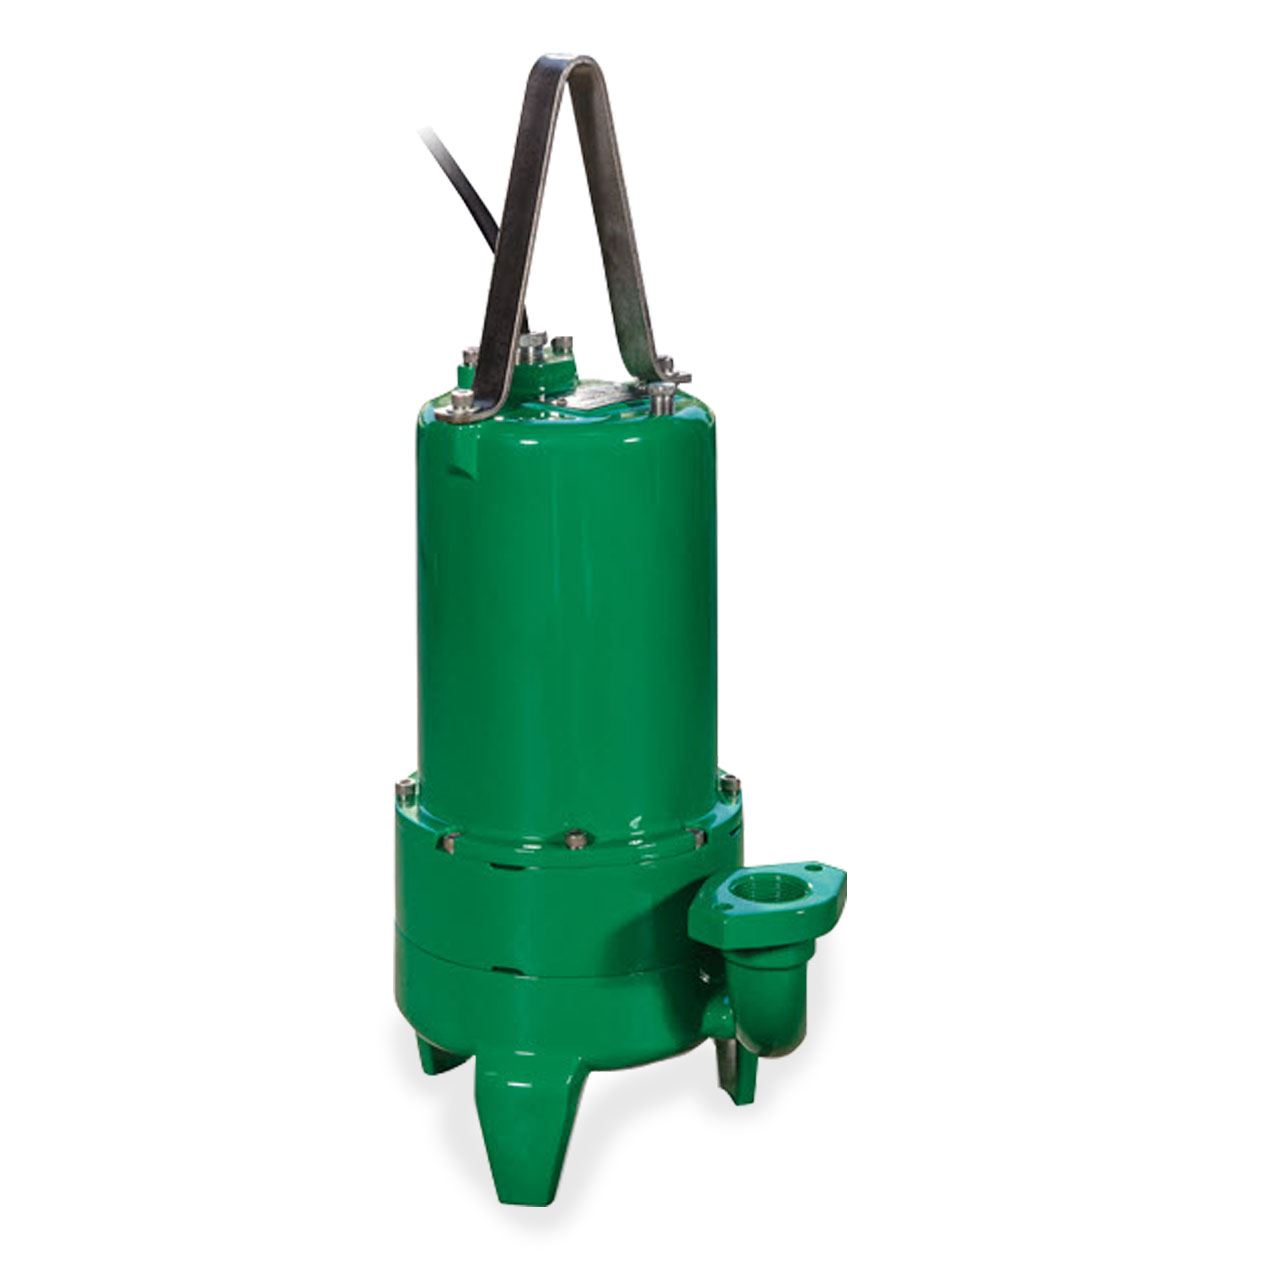 myers myers vrs20m 21 vr2 residential submersible grinder pump 2 0 well pump diagram myers vrs20m 21 vr2 residential submersible grinder pump 2 0 hp 230v 1 ph manual 20